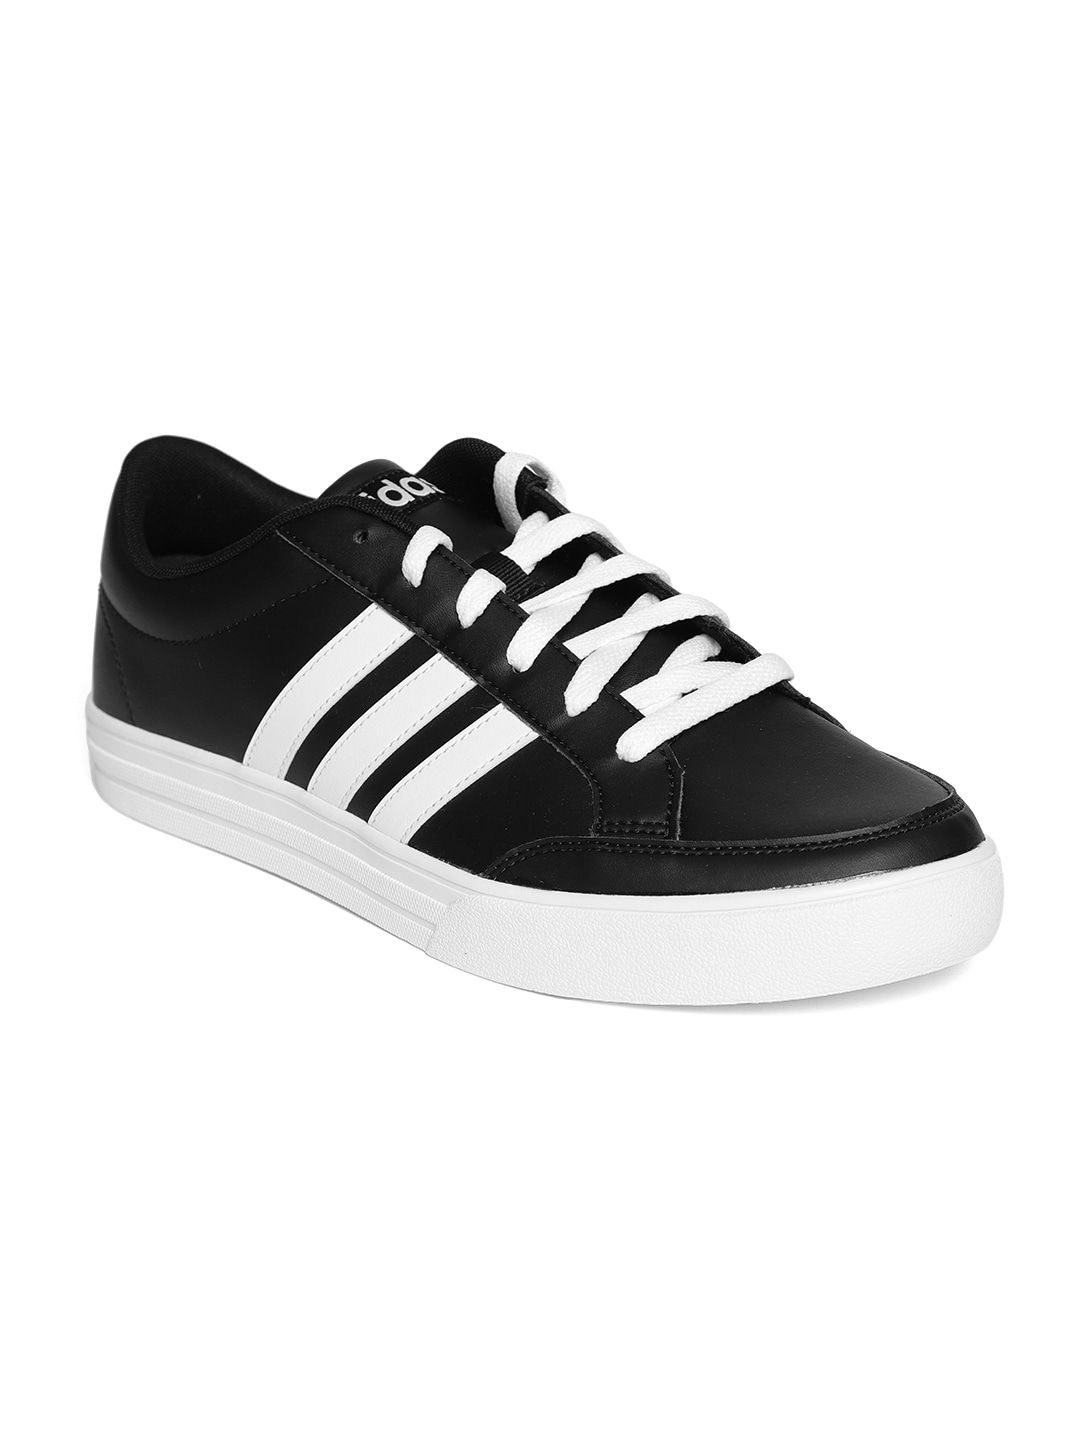 best website d8e41 7bd73 Adidas Men Tennis Shoes Sports - Buy Adidas Men Tennis Shoes Sports online  in India